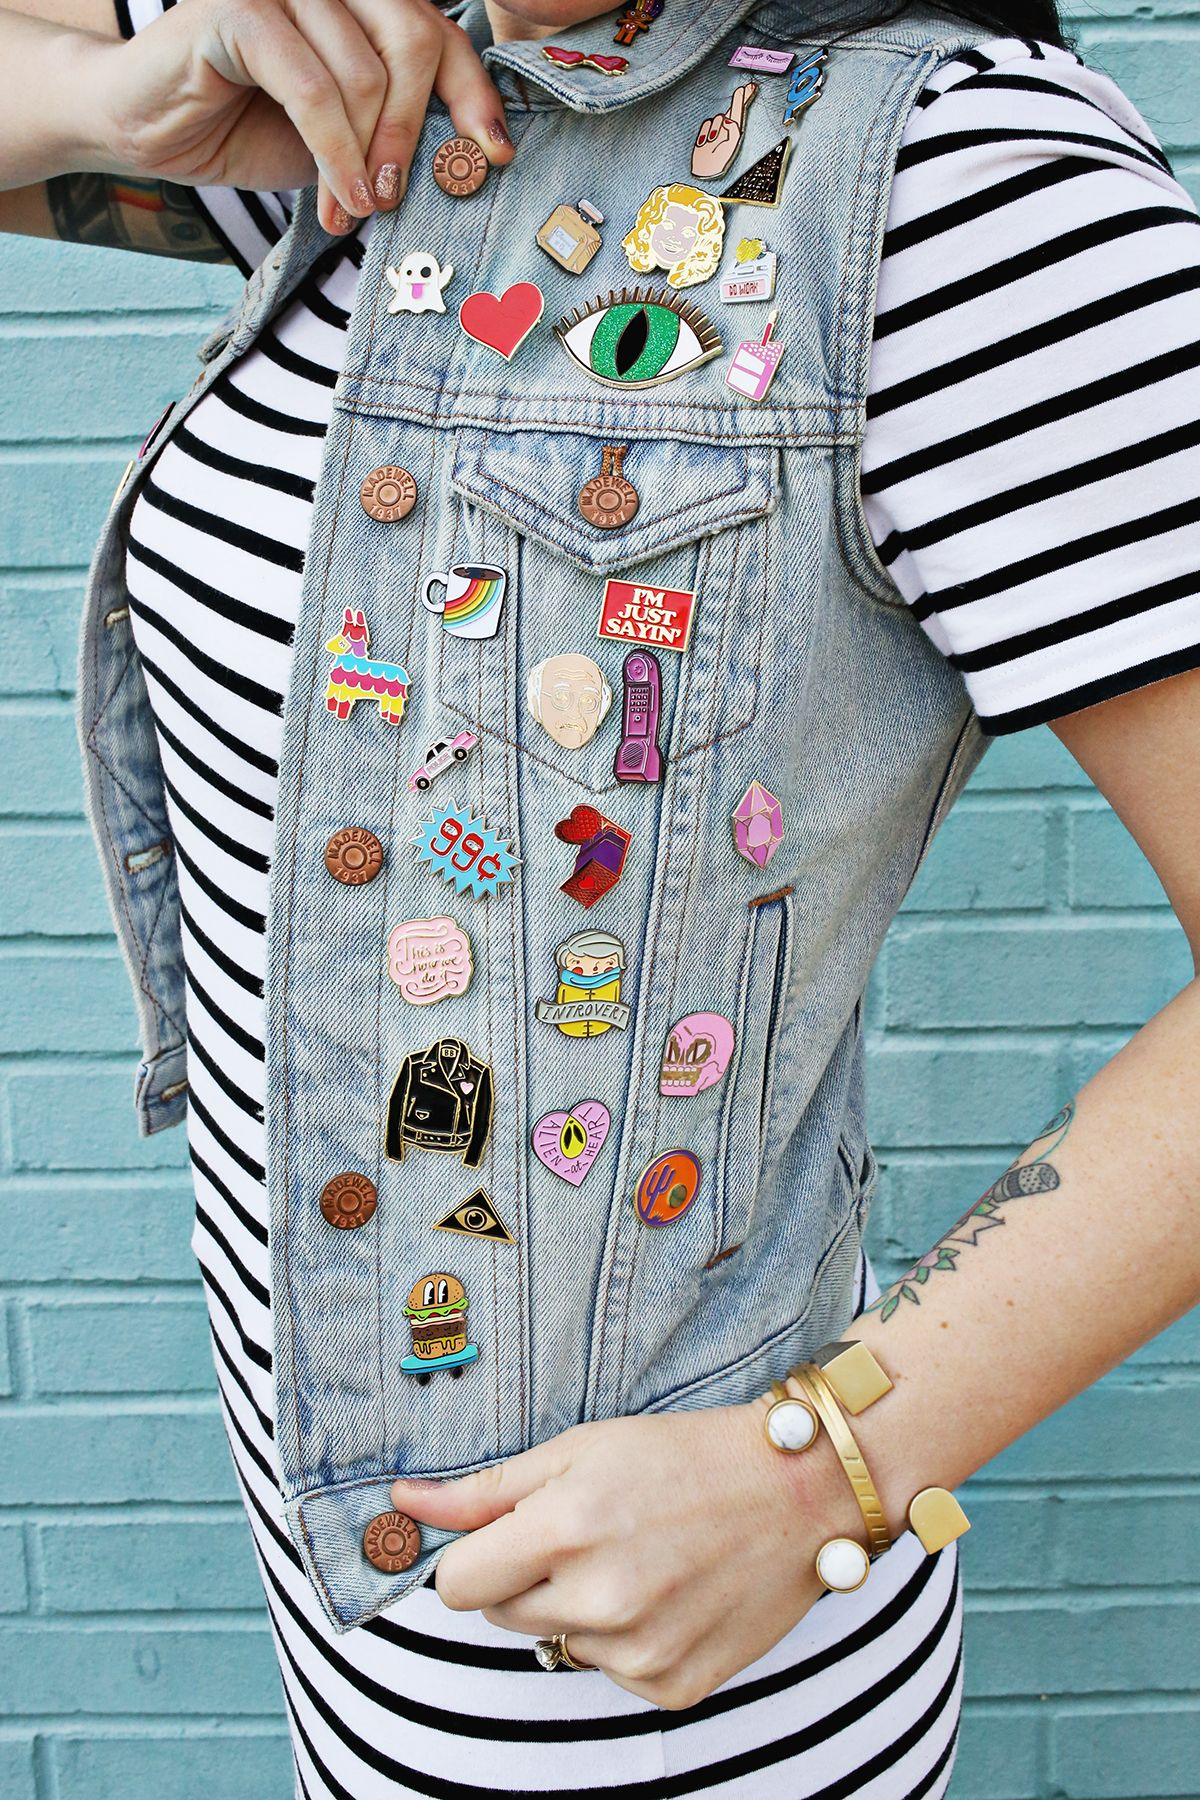 Apparel Sewing & Fabric Badges Honest 1 Pcs Cartoon Cat Pearl Pendant Metal Brooch Button Pins Denim Jacket Pin Jewelry Decoration Badge For Clothes Lapel Pins Year-End Bargain Sale